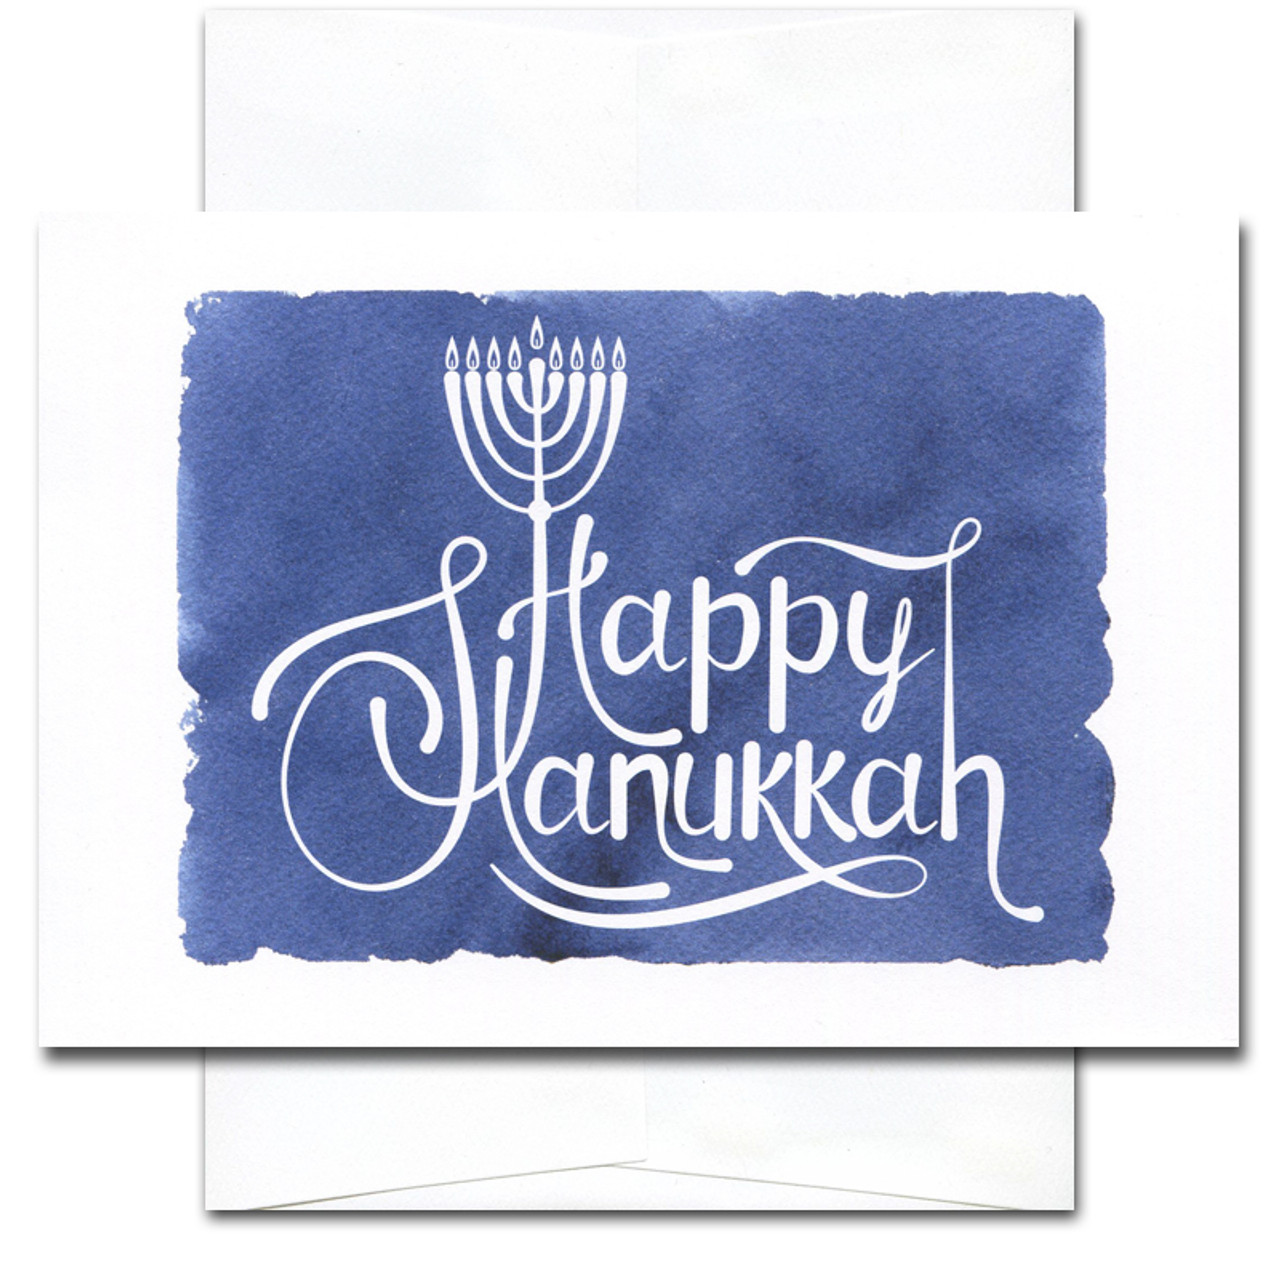 Hanukkah Card - Light and Peace. Cover shows an illustration of a menorah and the words Happy Hanukkah against a hand-painted blue watercolor background